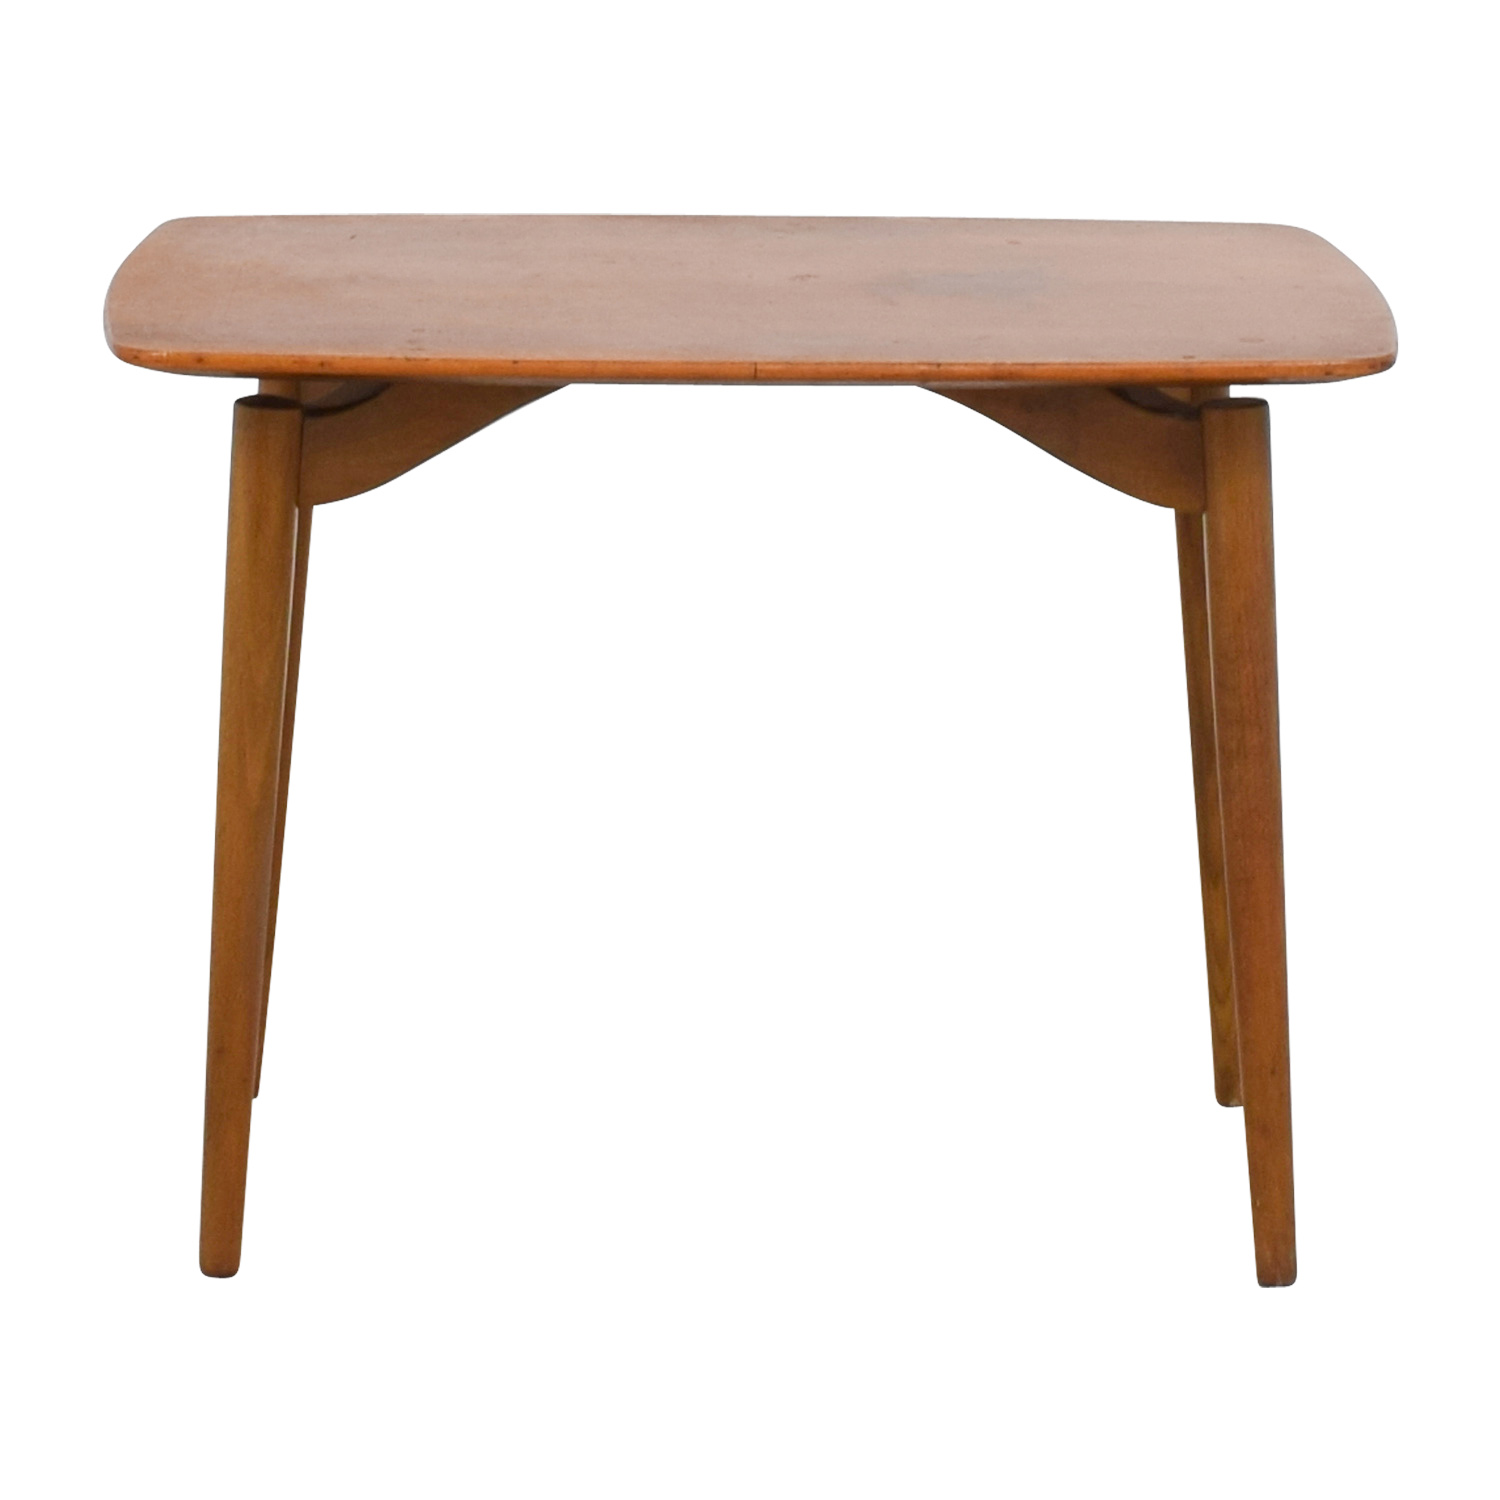 P Jeppesen P Jeppesen Mid Century Danish Teak Side Table second hand